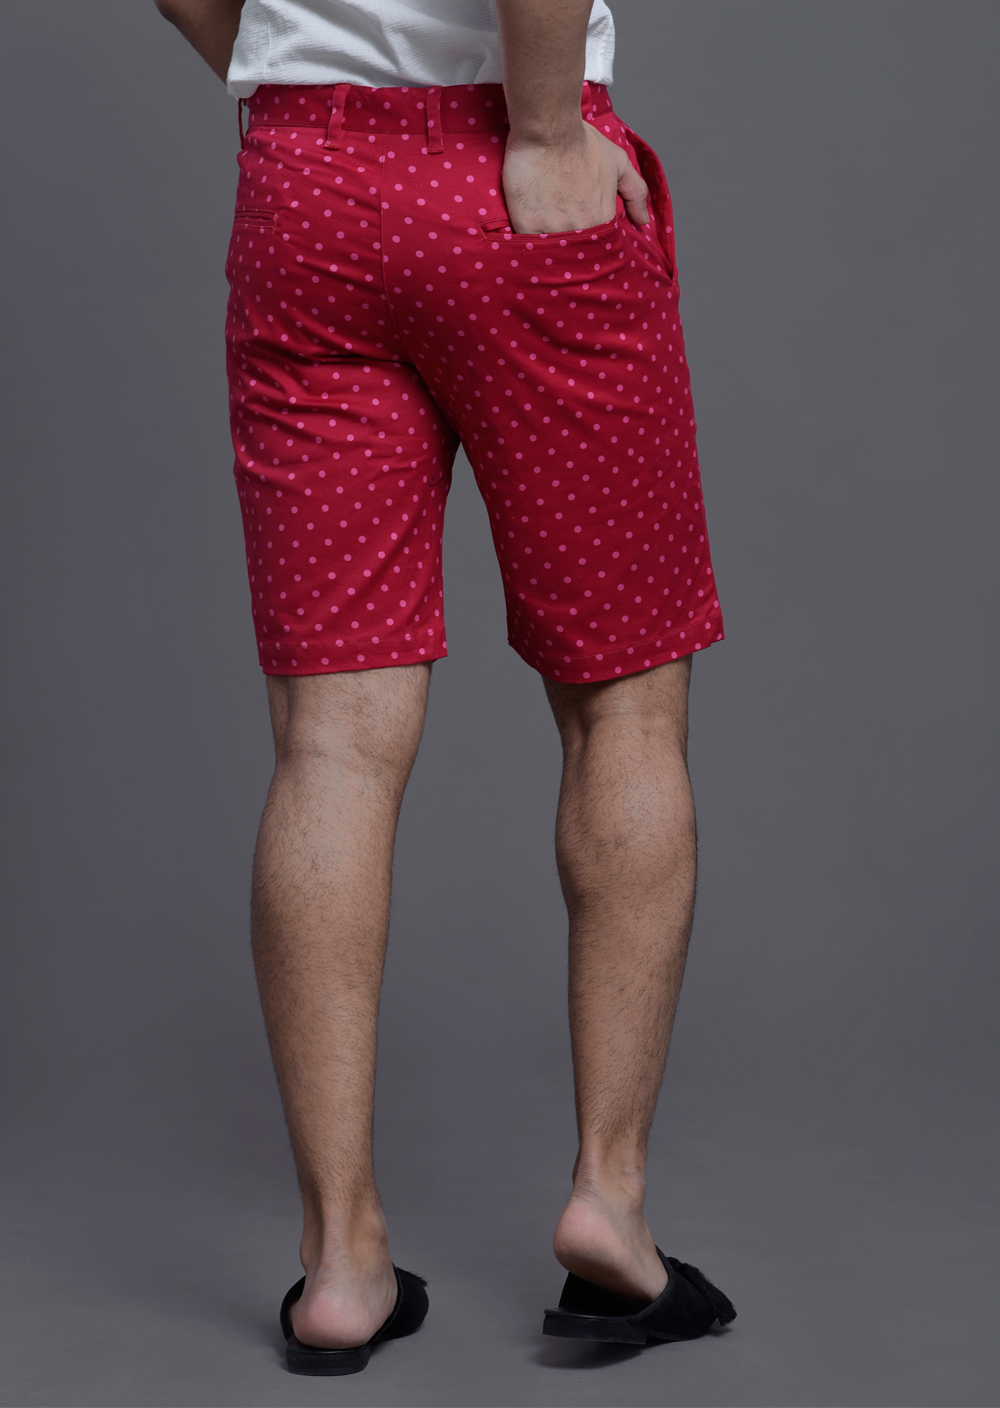 Dotted shorts in red